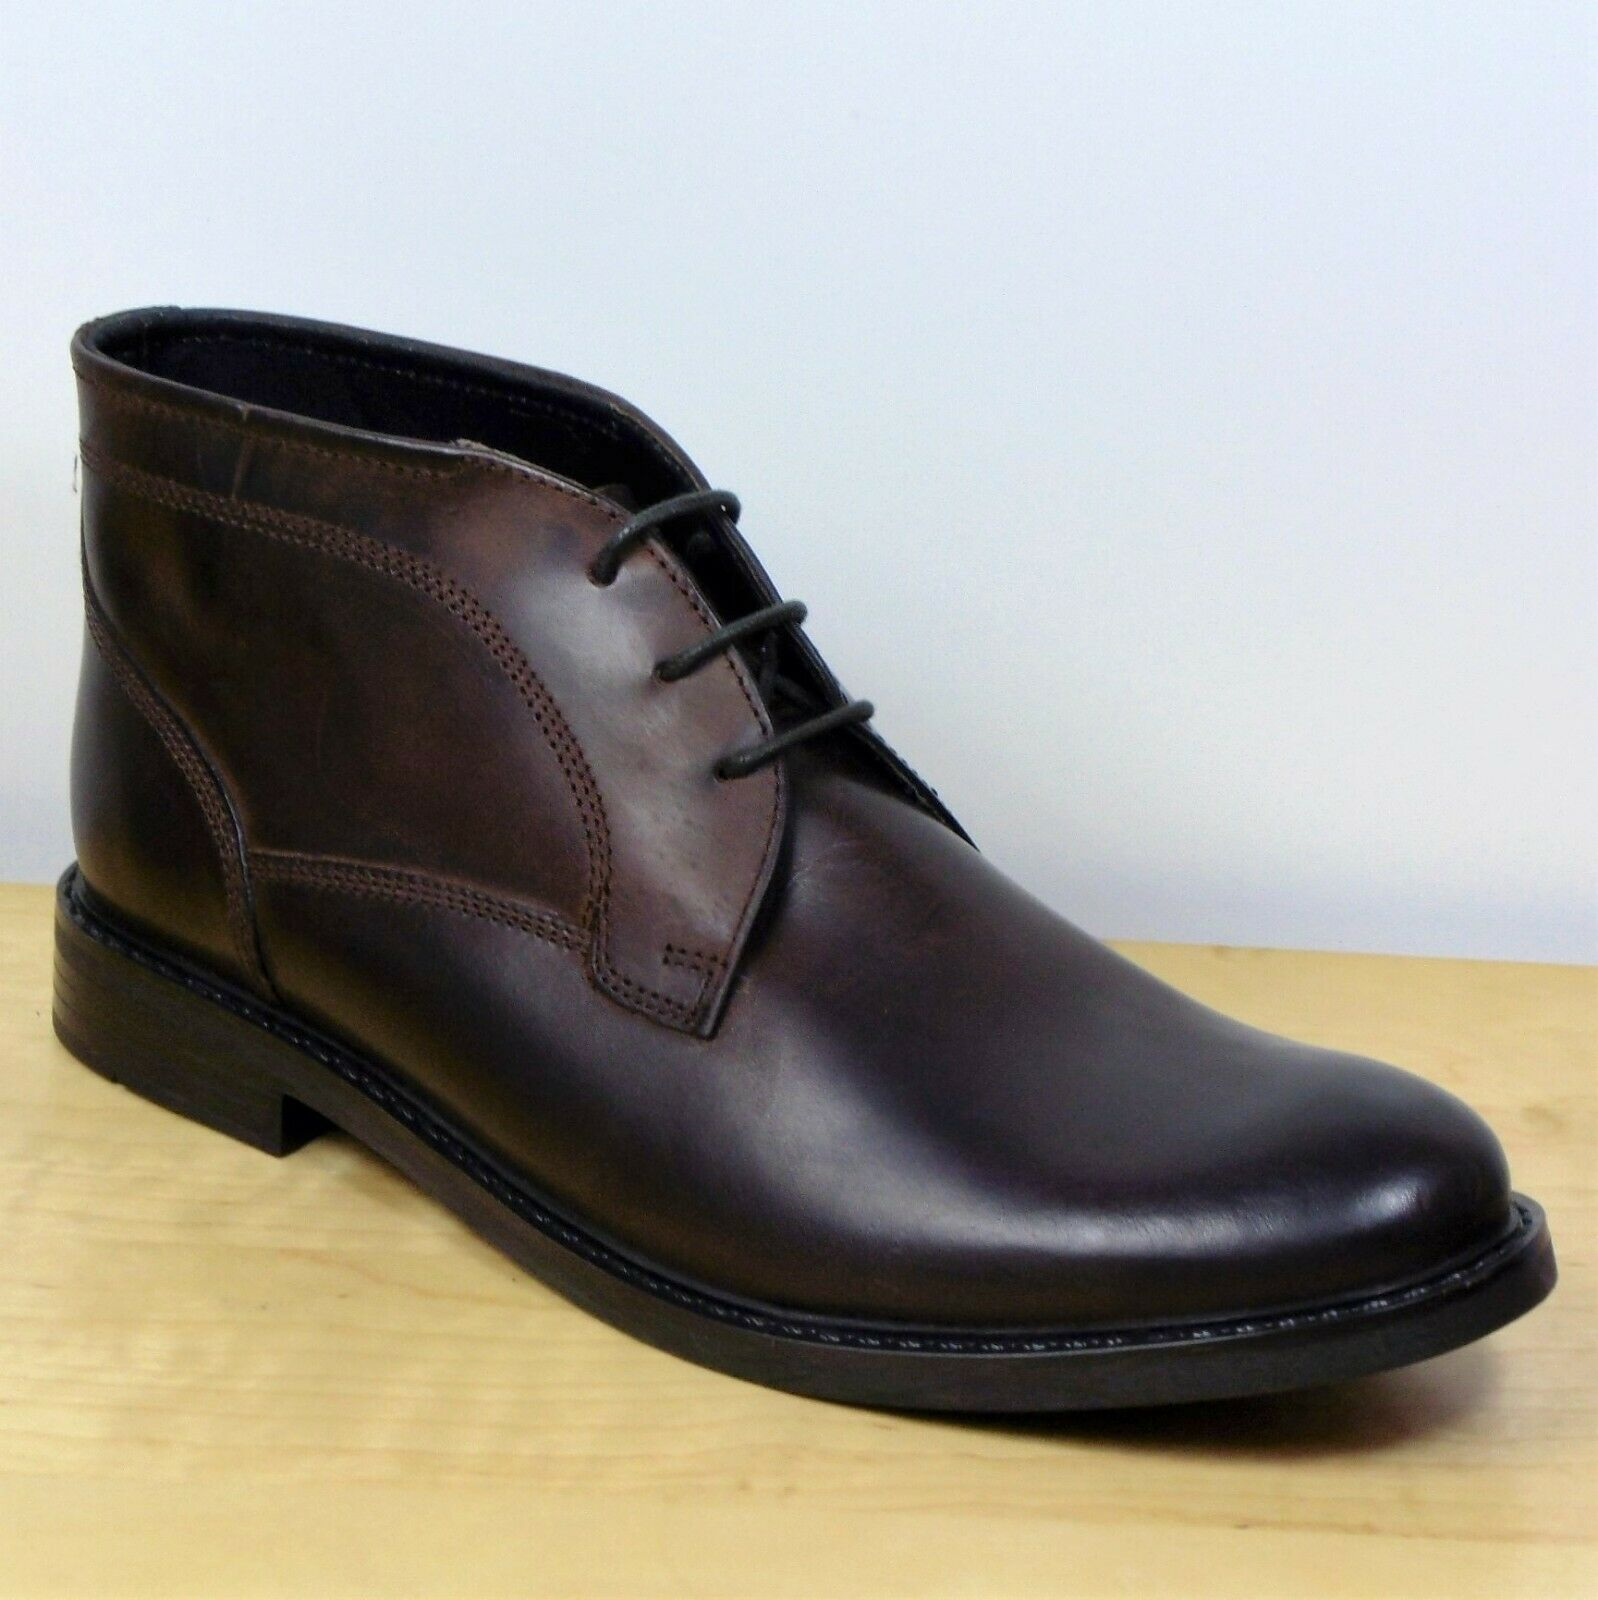 M&S Gents REAL LEATHER Lace Up CHUKKA BOOTS  Size 7  BROWN